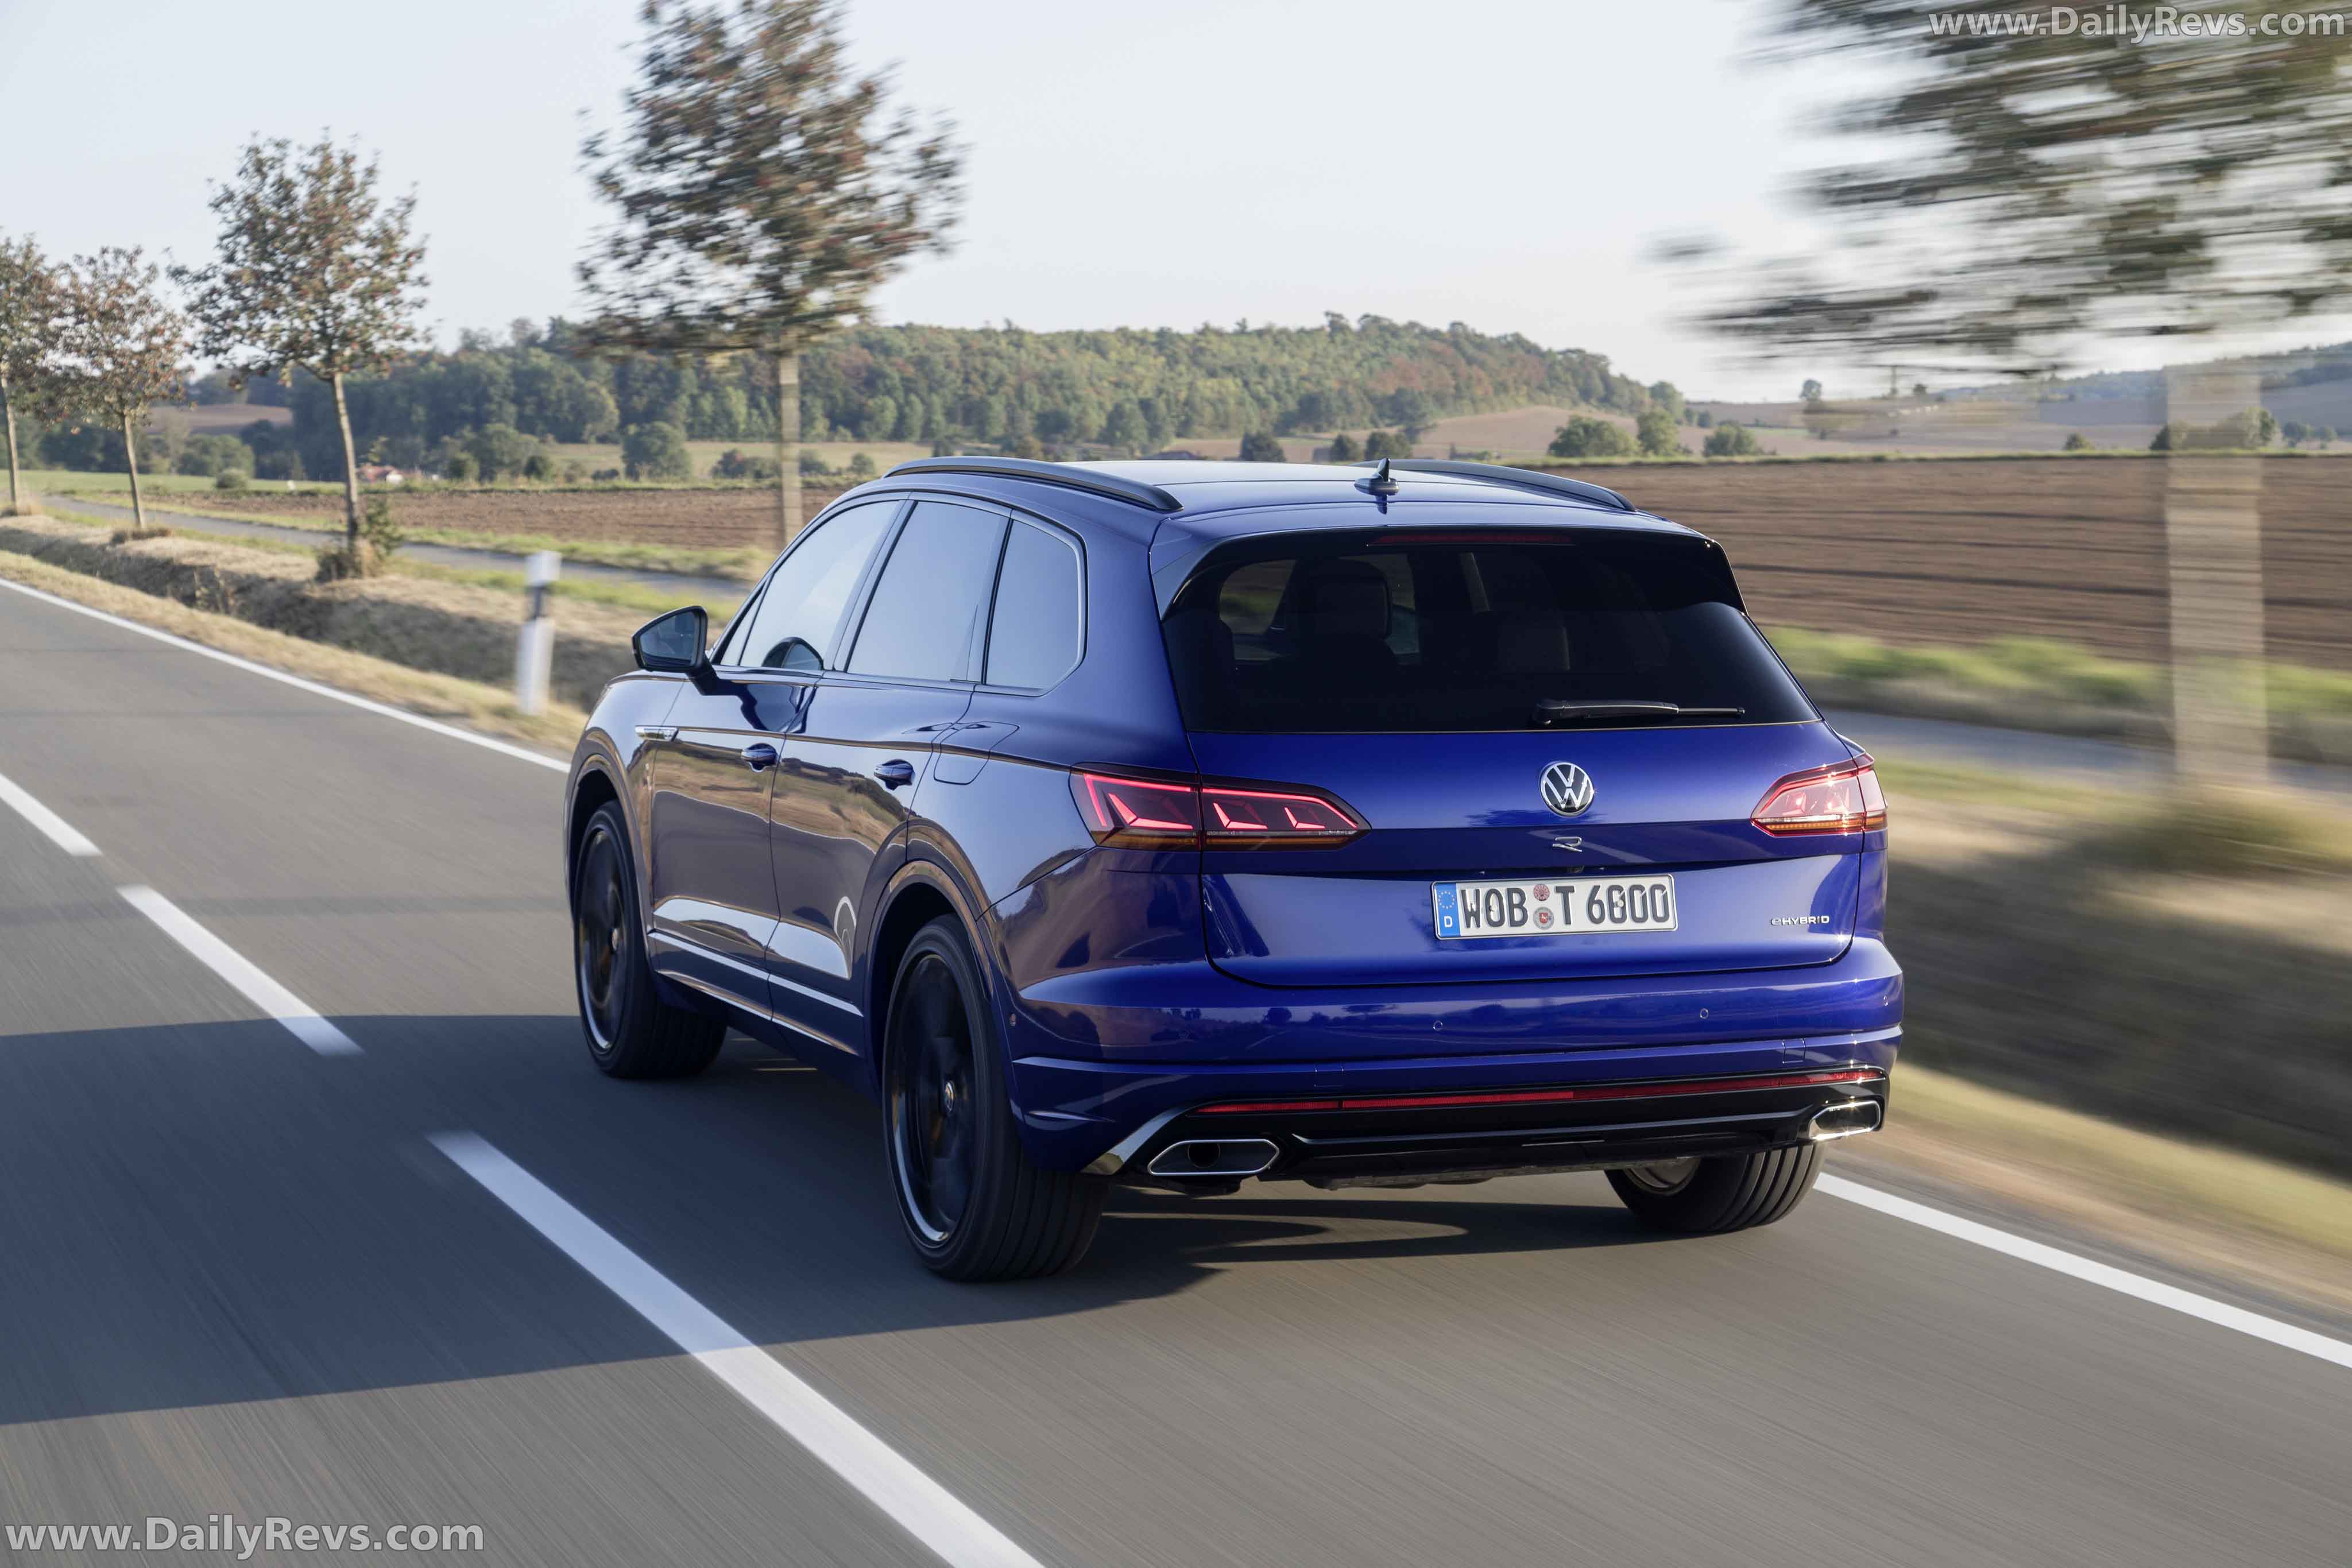 2020 volkswagen touareg r phev hd pictures videos specs information dailyrevs 2020 volkswagen touareg r phev hd pictures videos specs information dailyrevs